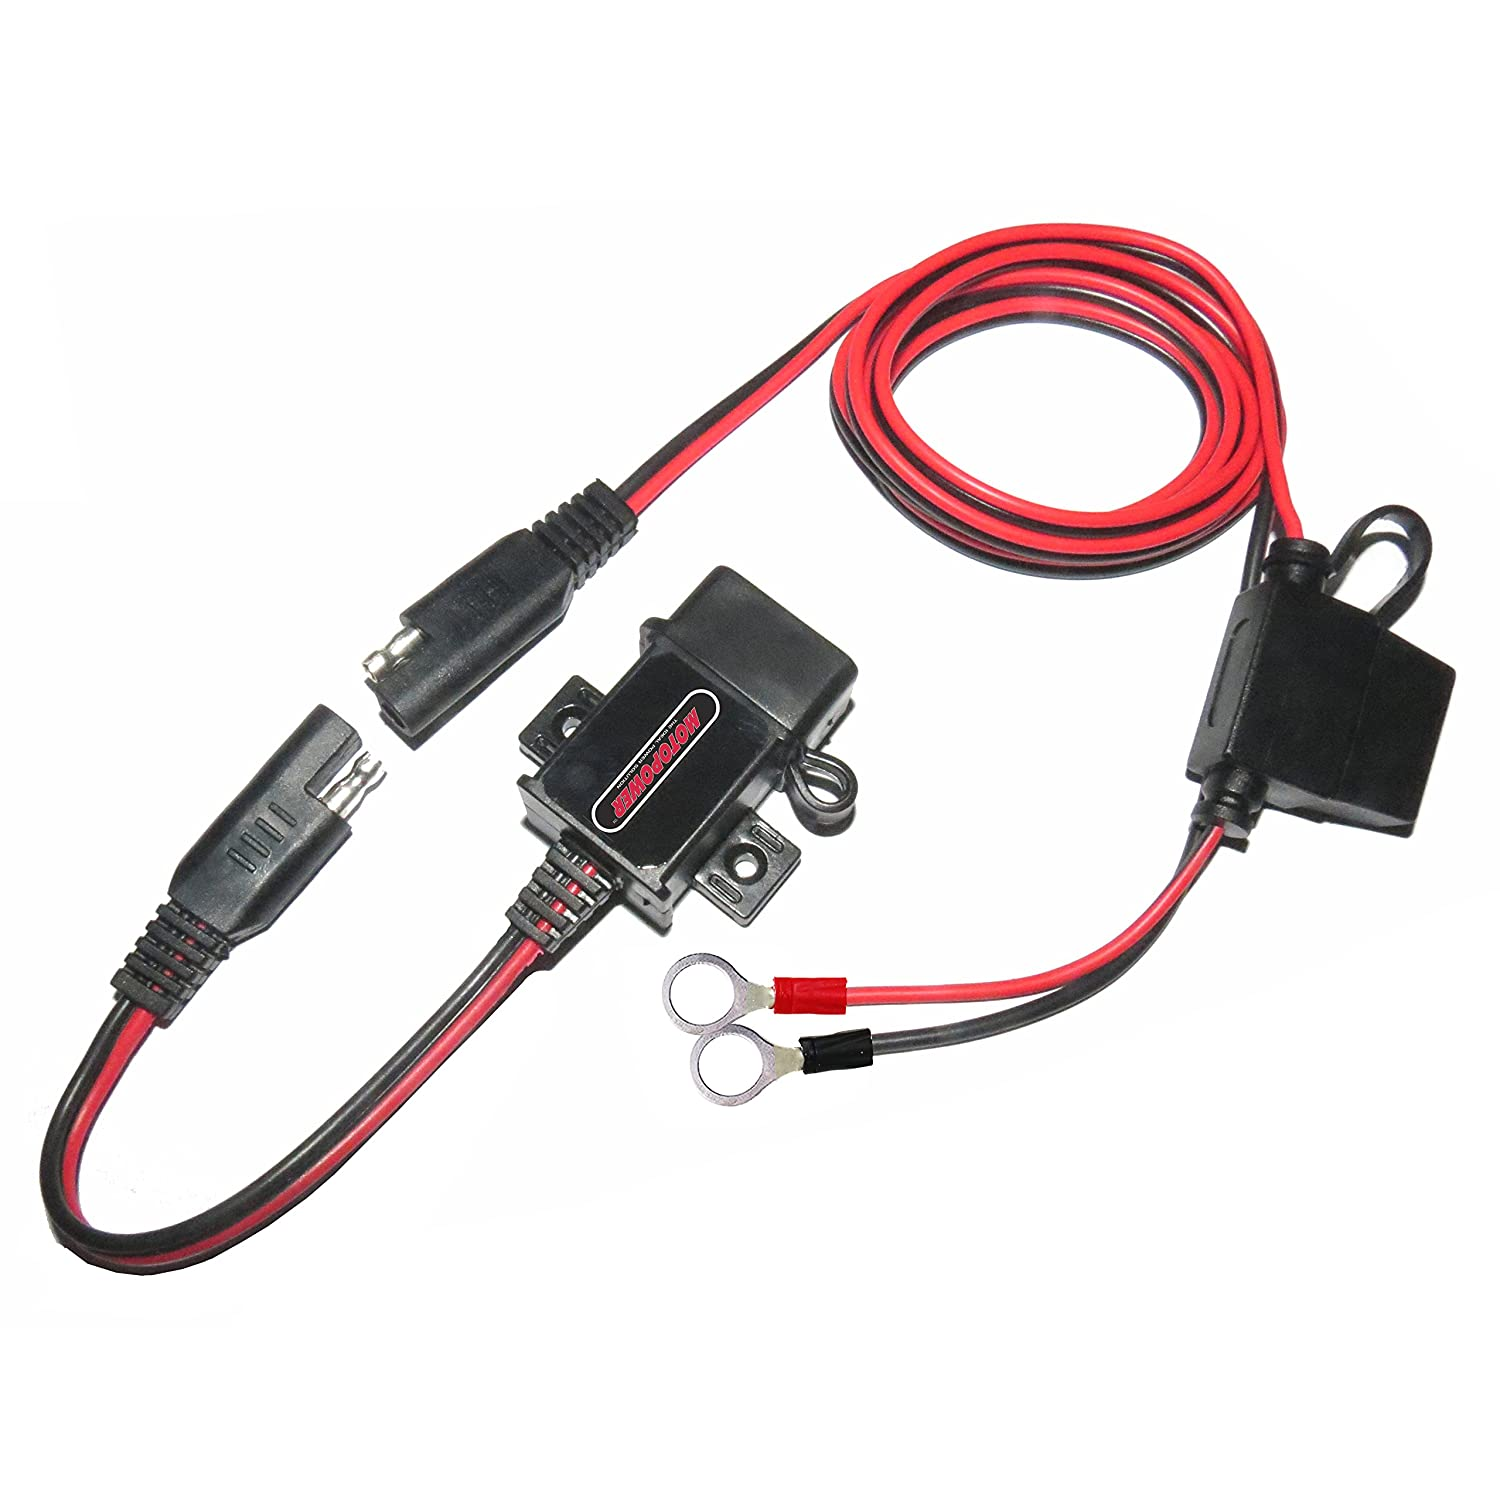 Motopower Mp0609a 31amp Motorcycle Usb Charger Kit Sae Hp Motor Waterproof To Adapter Phone Gps Charge On Cell Phones Accessories